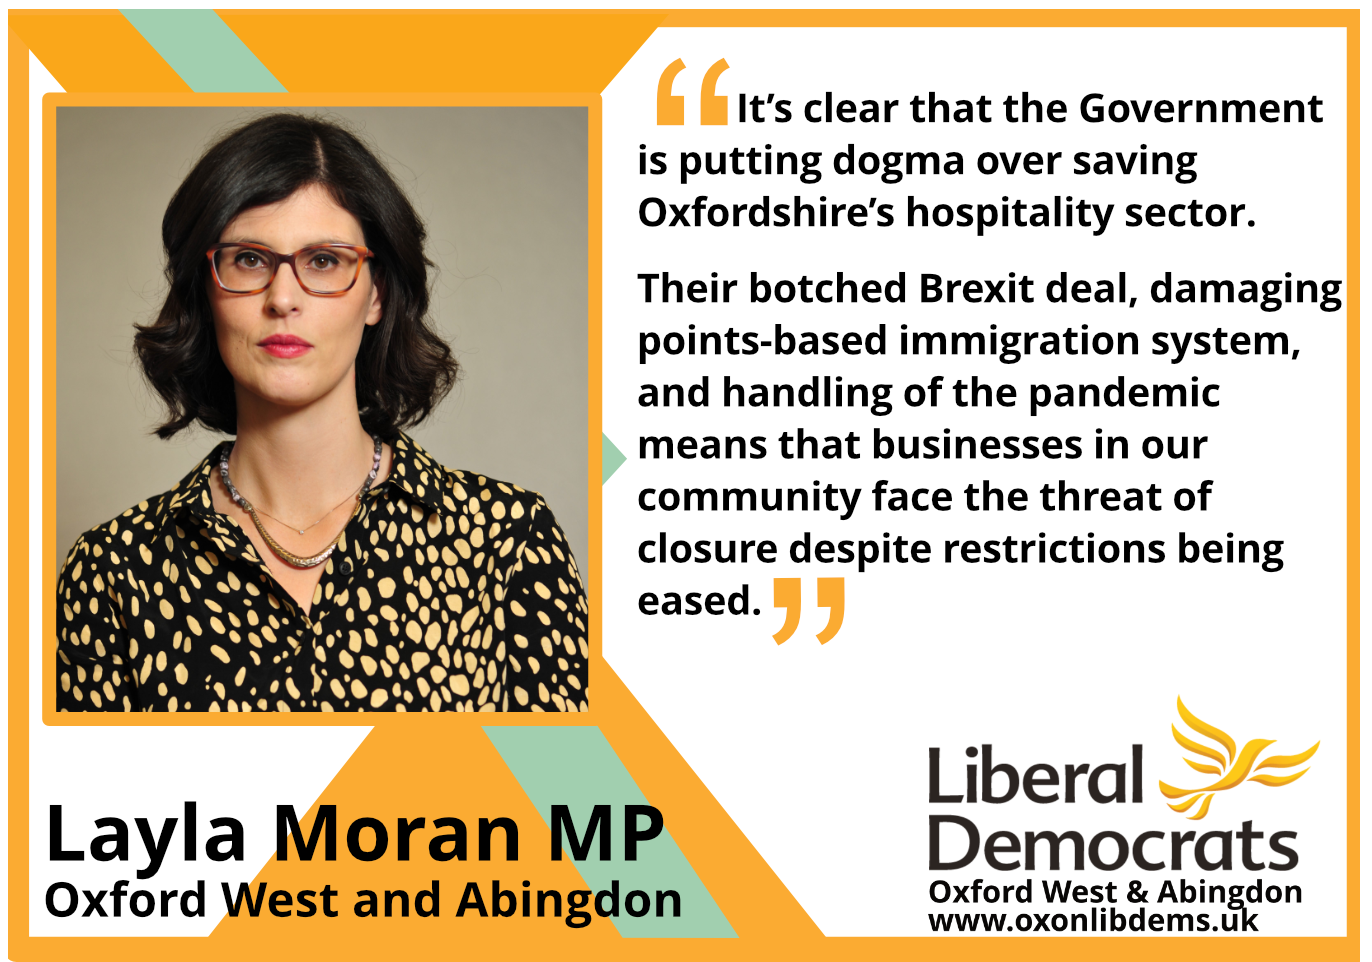 key_It's clear that the Government is putting dogma over saving Oxfordshire's hospitality sector. Their botched Brexit deal, damaging points-based immigration system, and handling of the pandemic means that businesses in our community face the threat of closure despite restrictions being eased